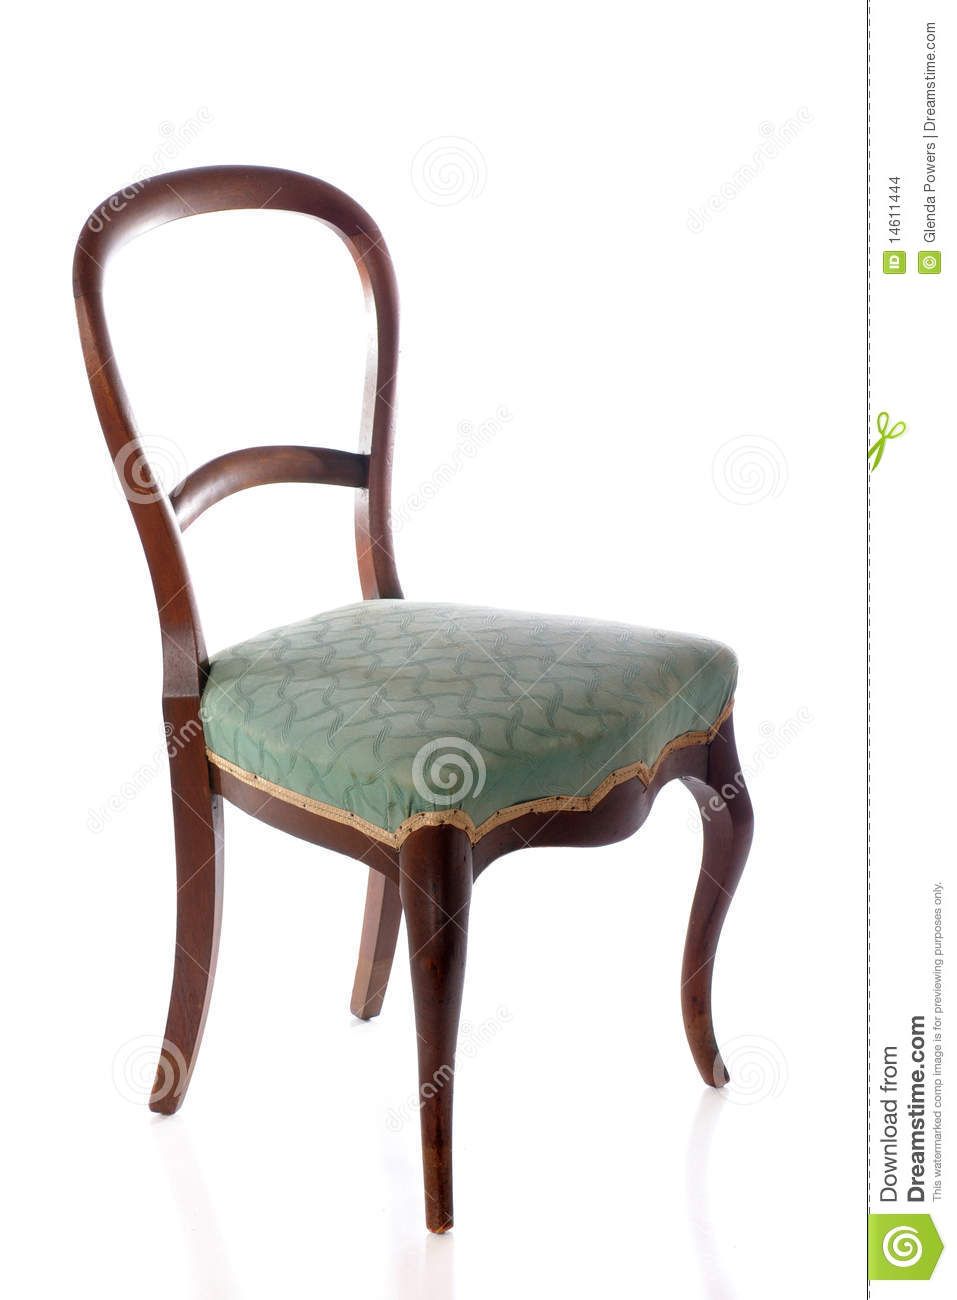 walnut victorian shop the furniture georgian chair edwardian armchair antique late product